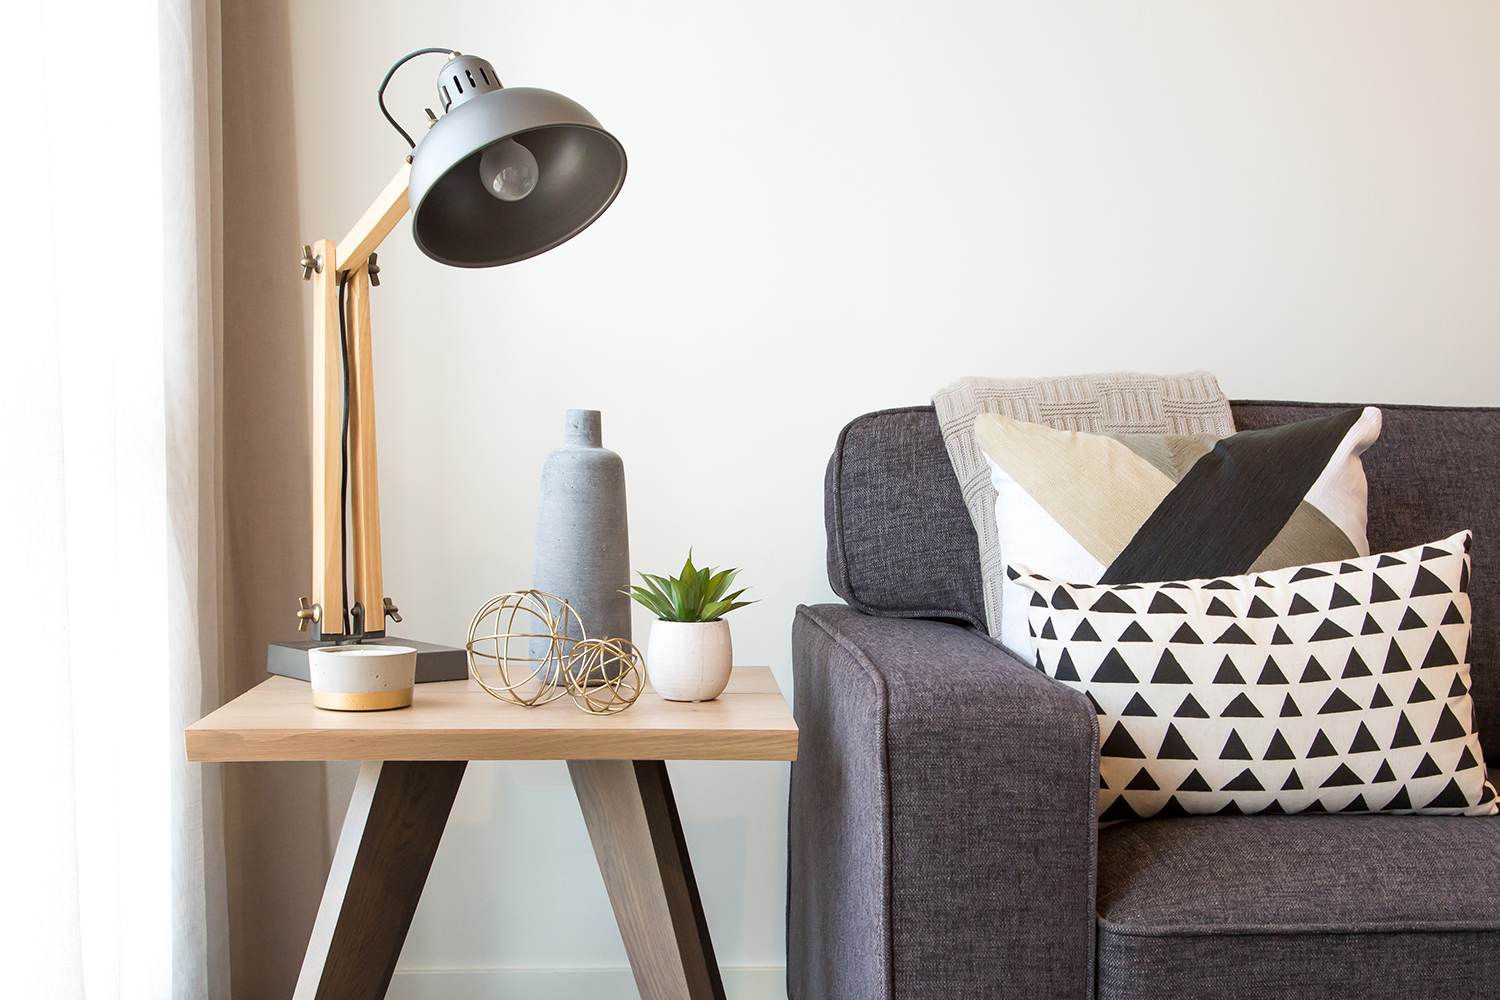 How-To-Create-Scandinavian-Style-In-Your-Home - Rustic-industrial-side-table-with-couch